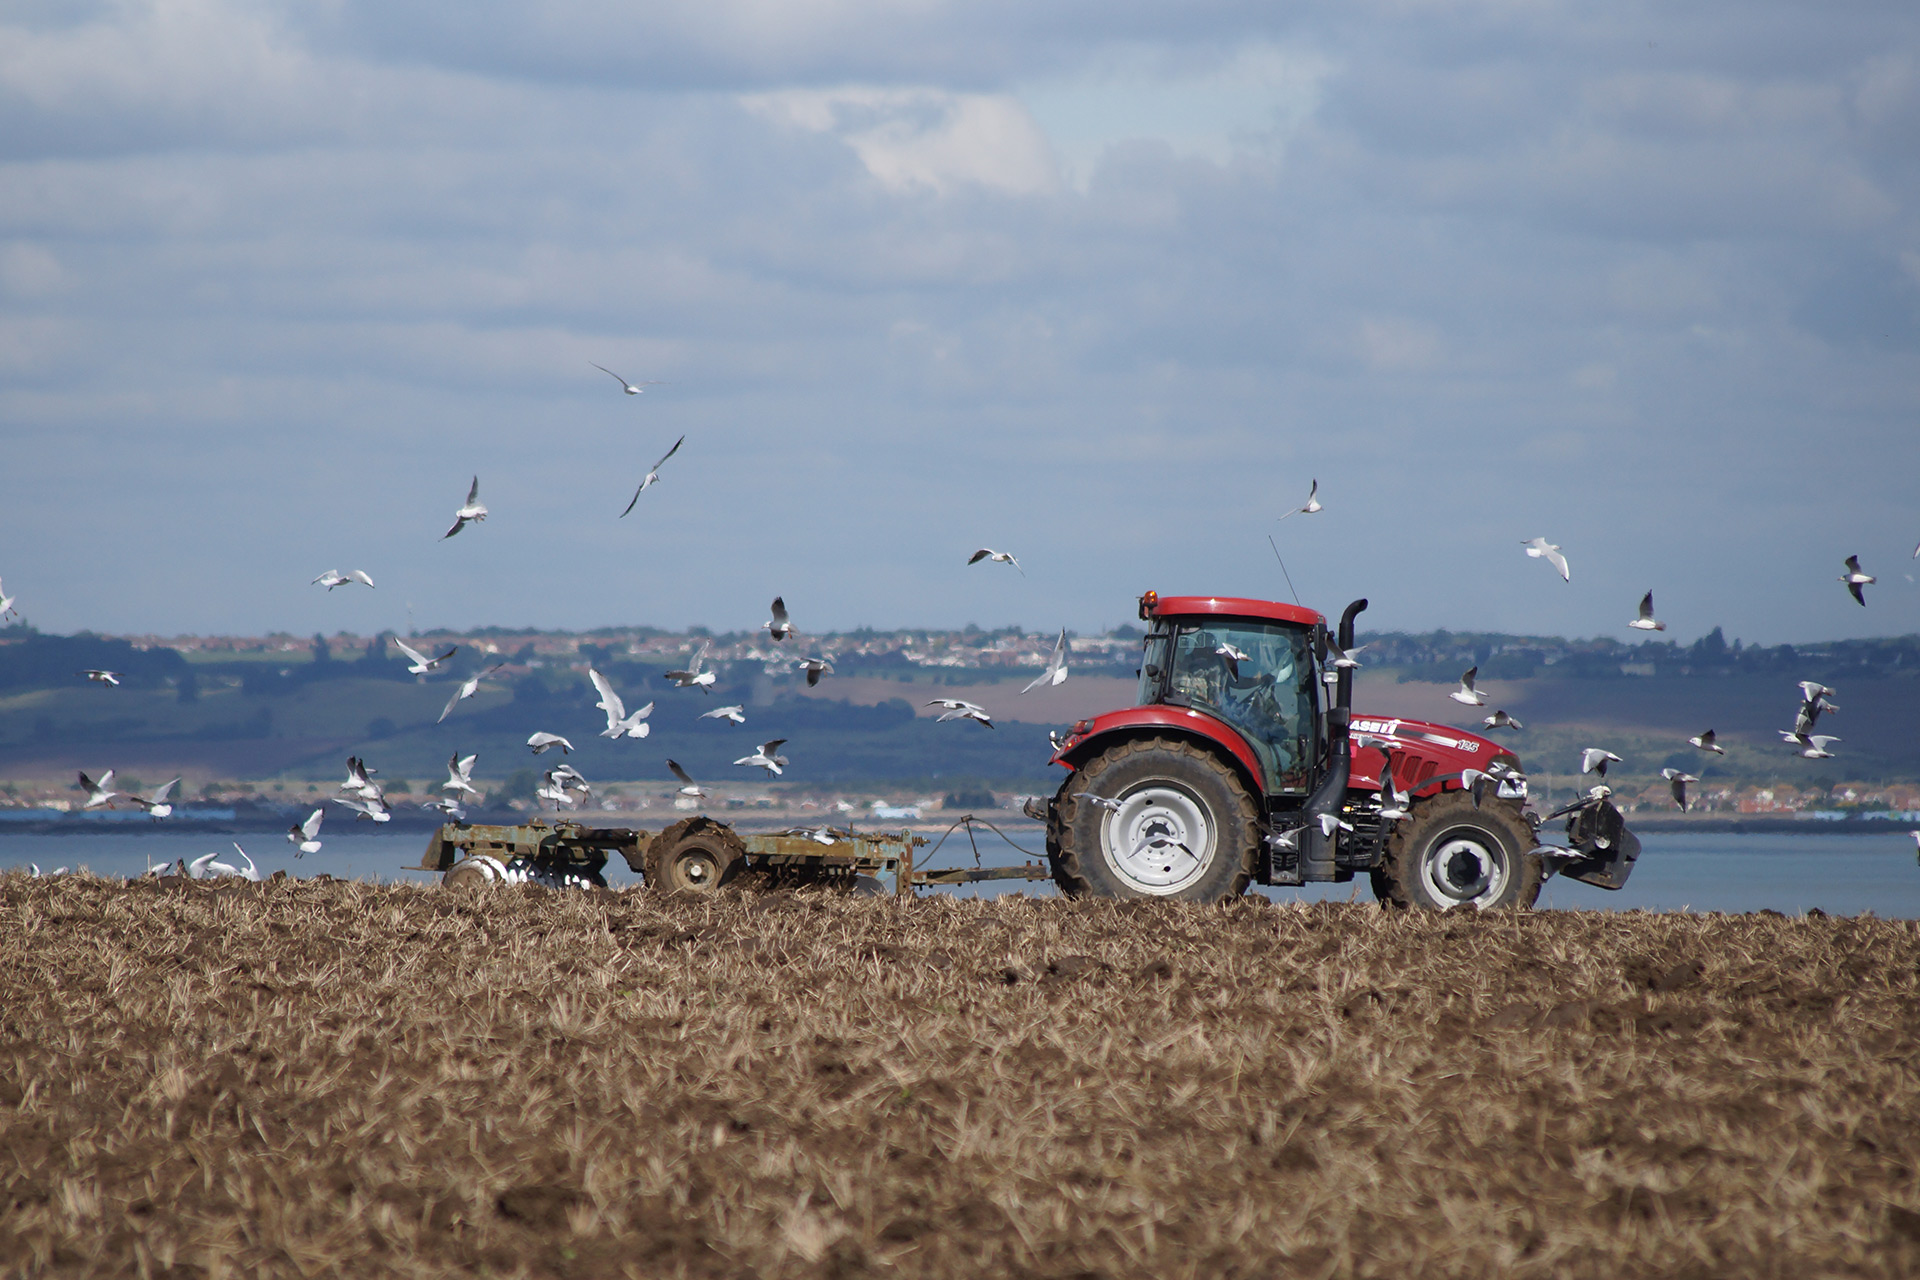 A tractor in a field surrounded by seagulls